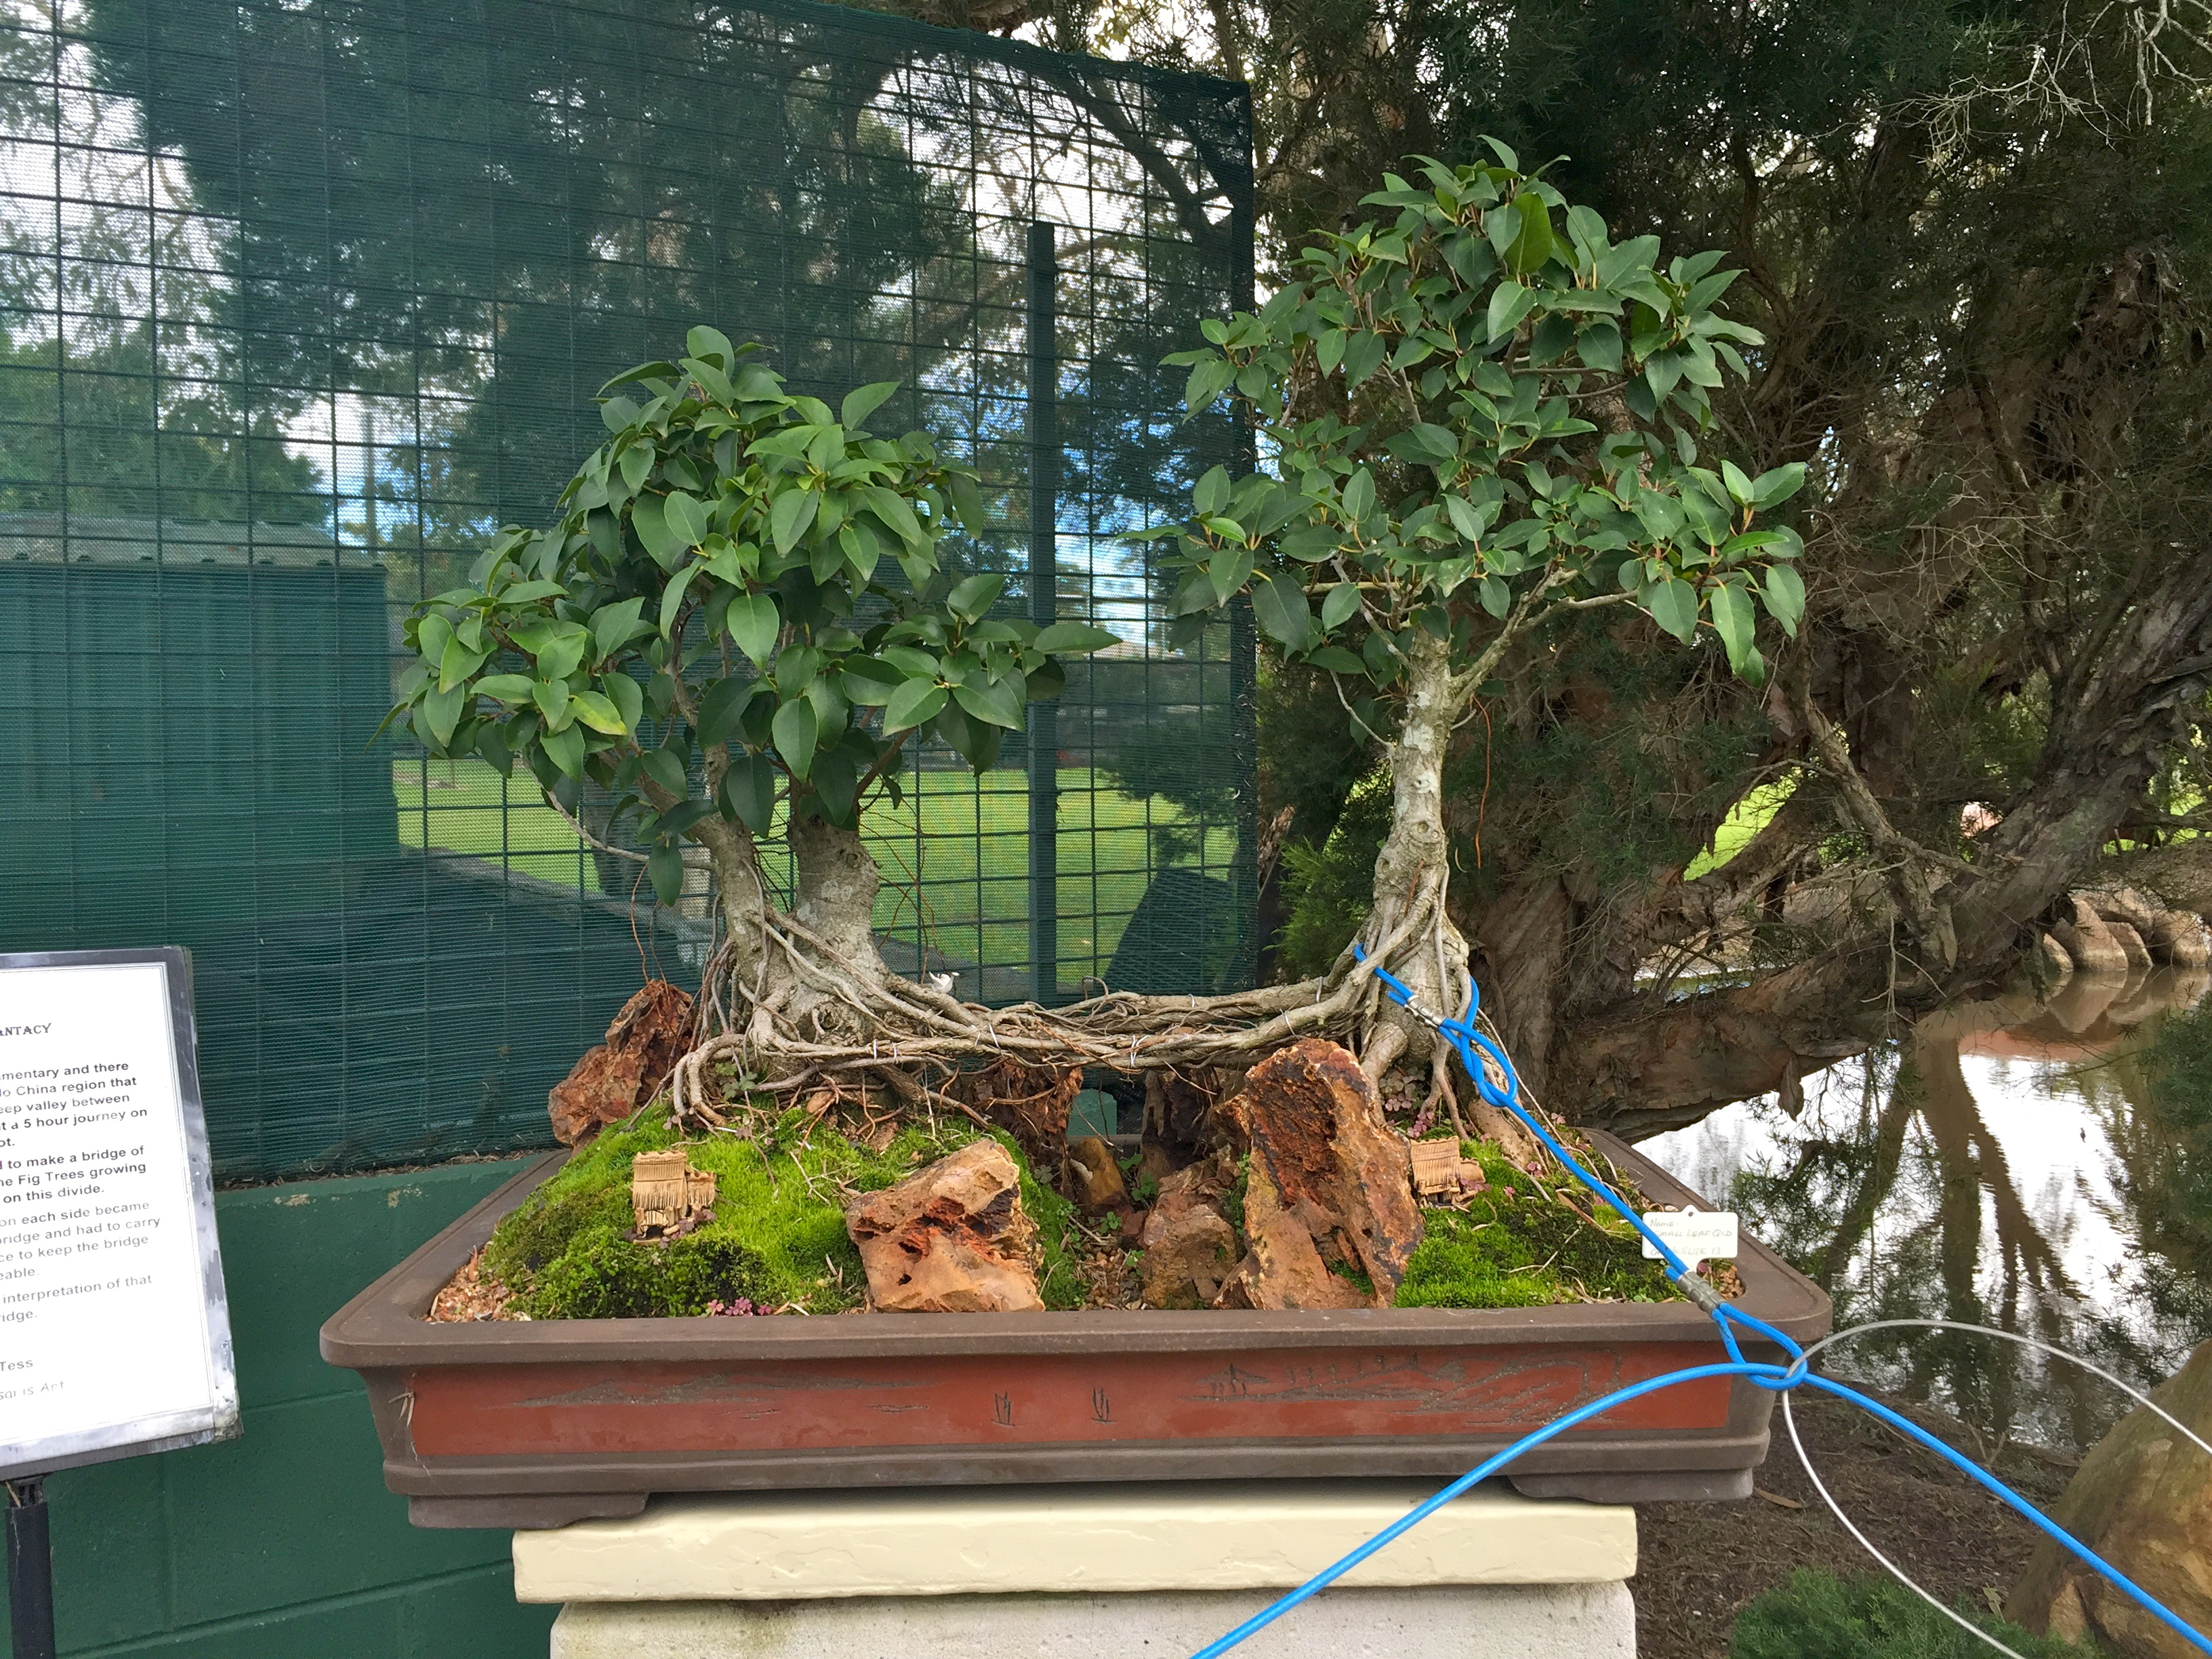 Bonsai Tree for sale at Bonsai Northside Nursery, Brisbane © GreenSocks